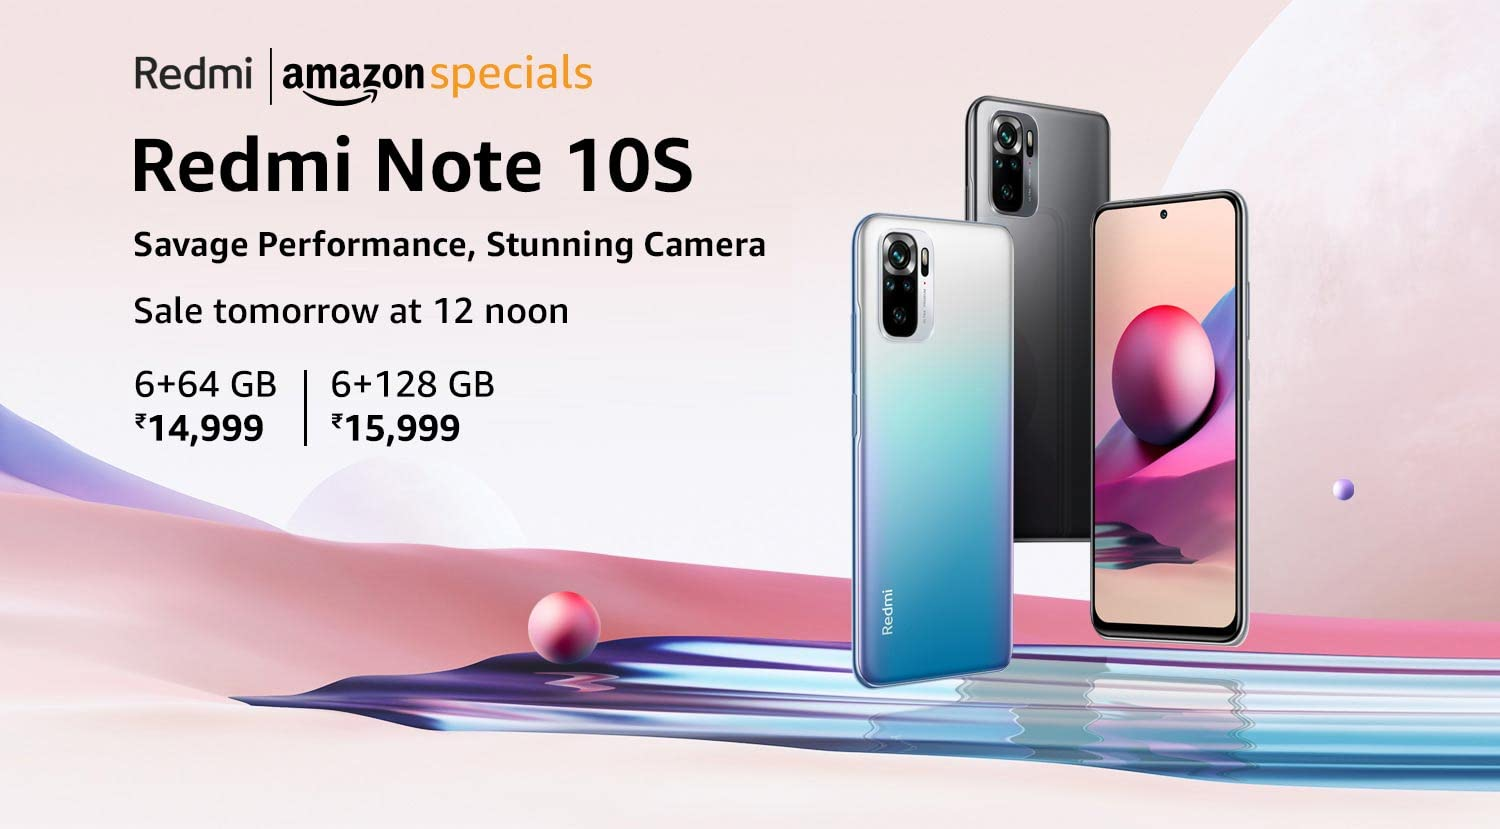 Redmi Note 10S| Just Launched |10% Instant Discount for SBI customers| EMI Starts from